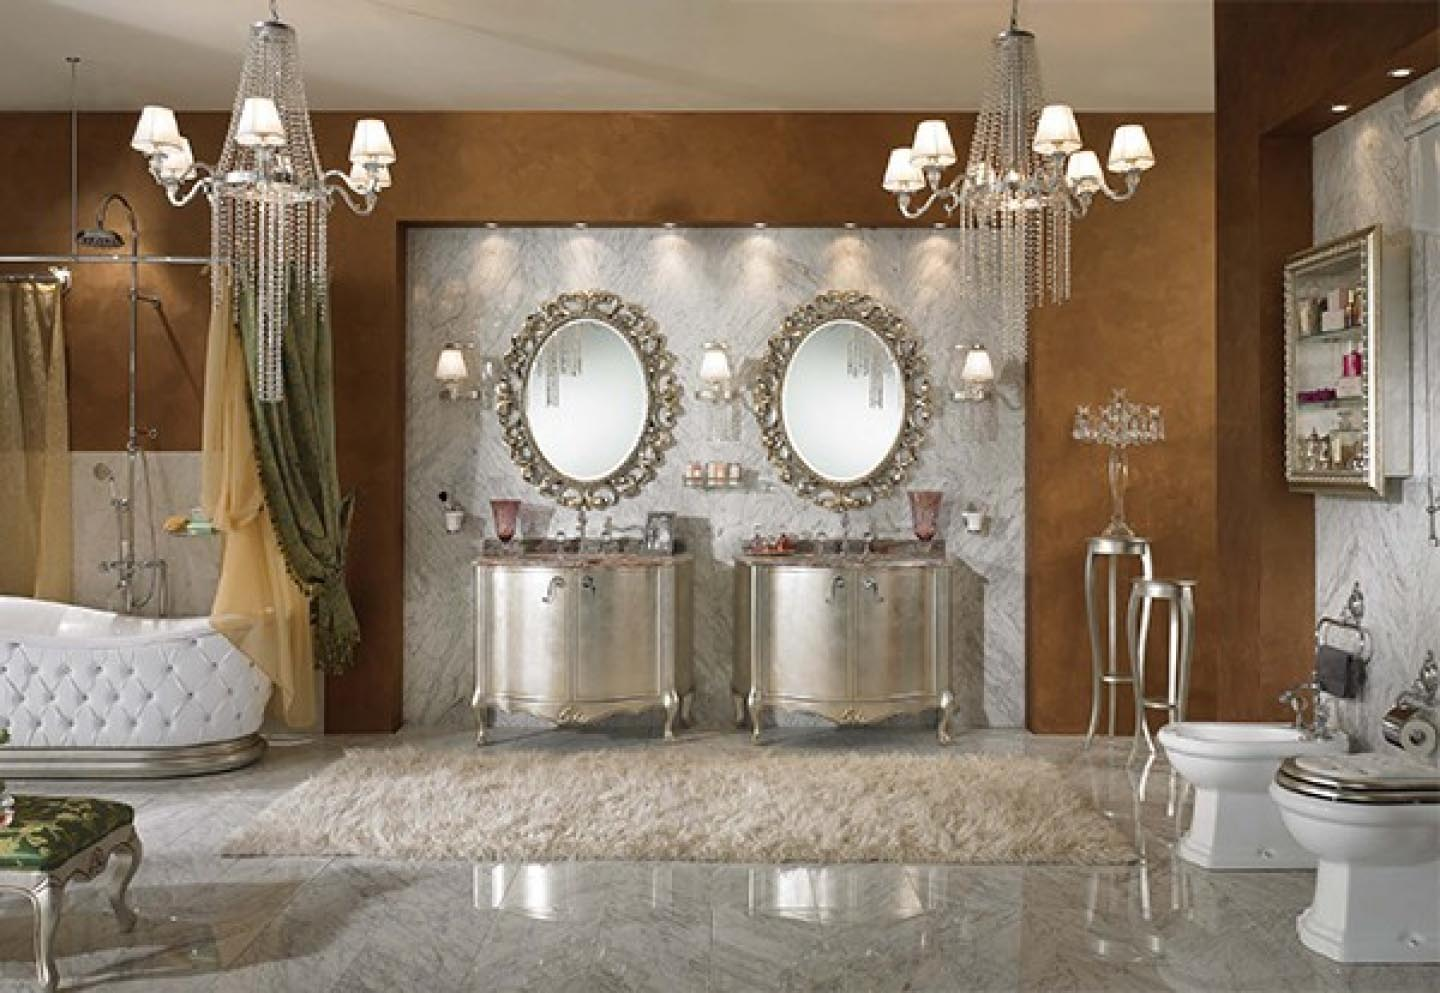 Silver Oval Mirrors Bathroom